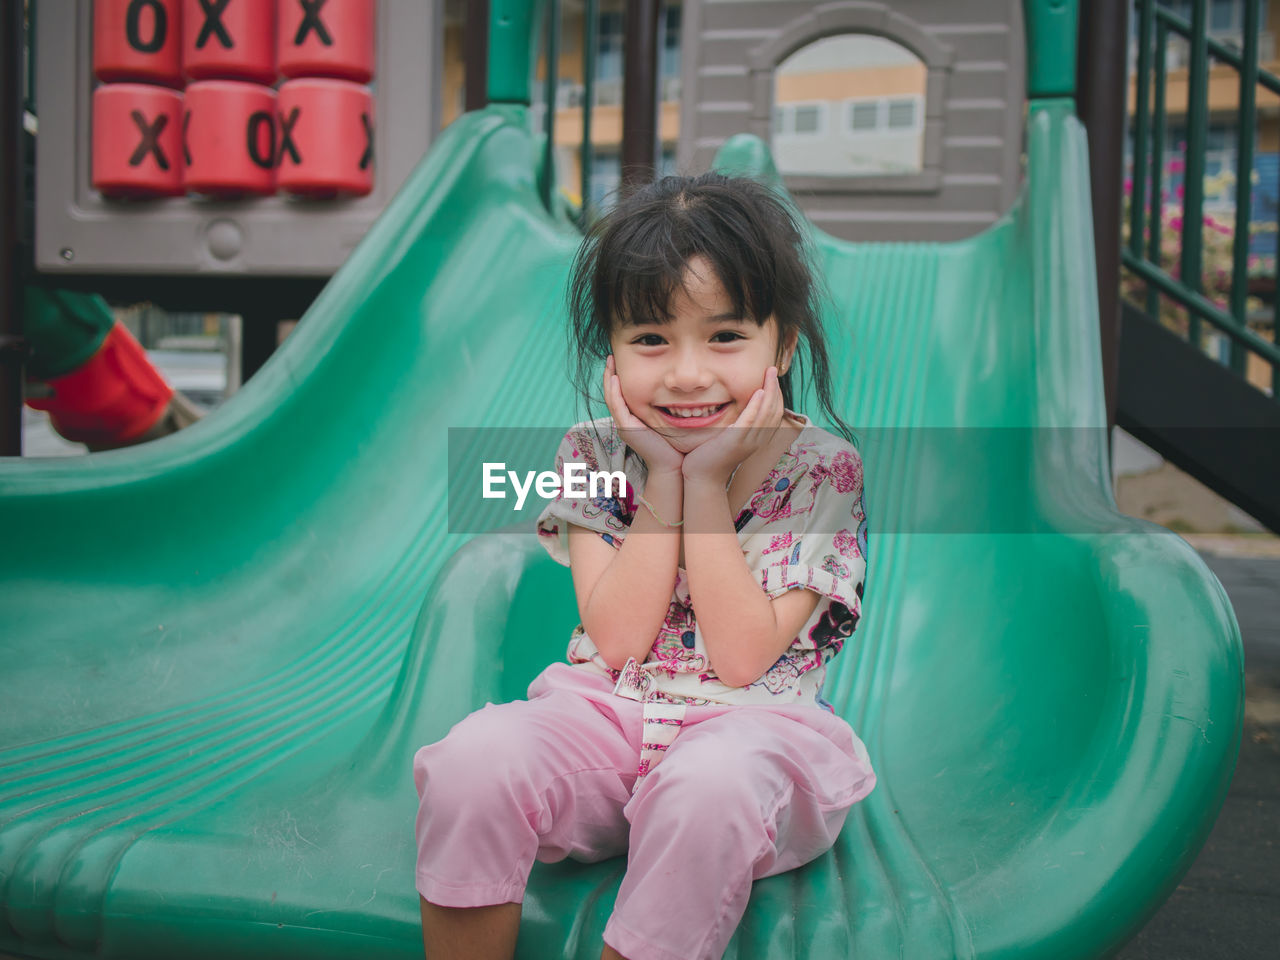 childhood, child, girls, one person, real people, happiness, front view, smiling, innocence, sitting, portrait, cute, looking at camera, leisure activity, lifestyles, enjoyment, emotion, women, bangs, outdoors, hairstyle, outdoor play equipment